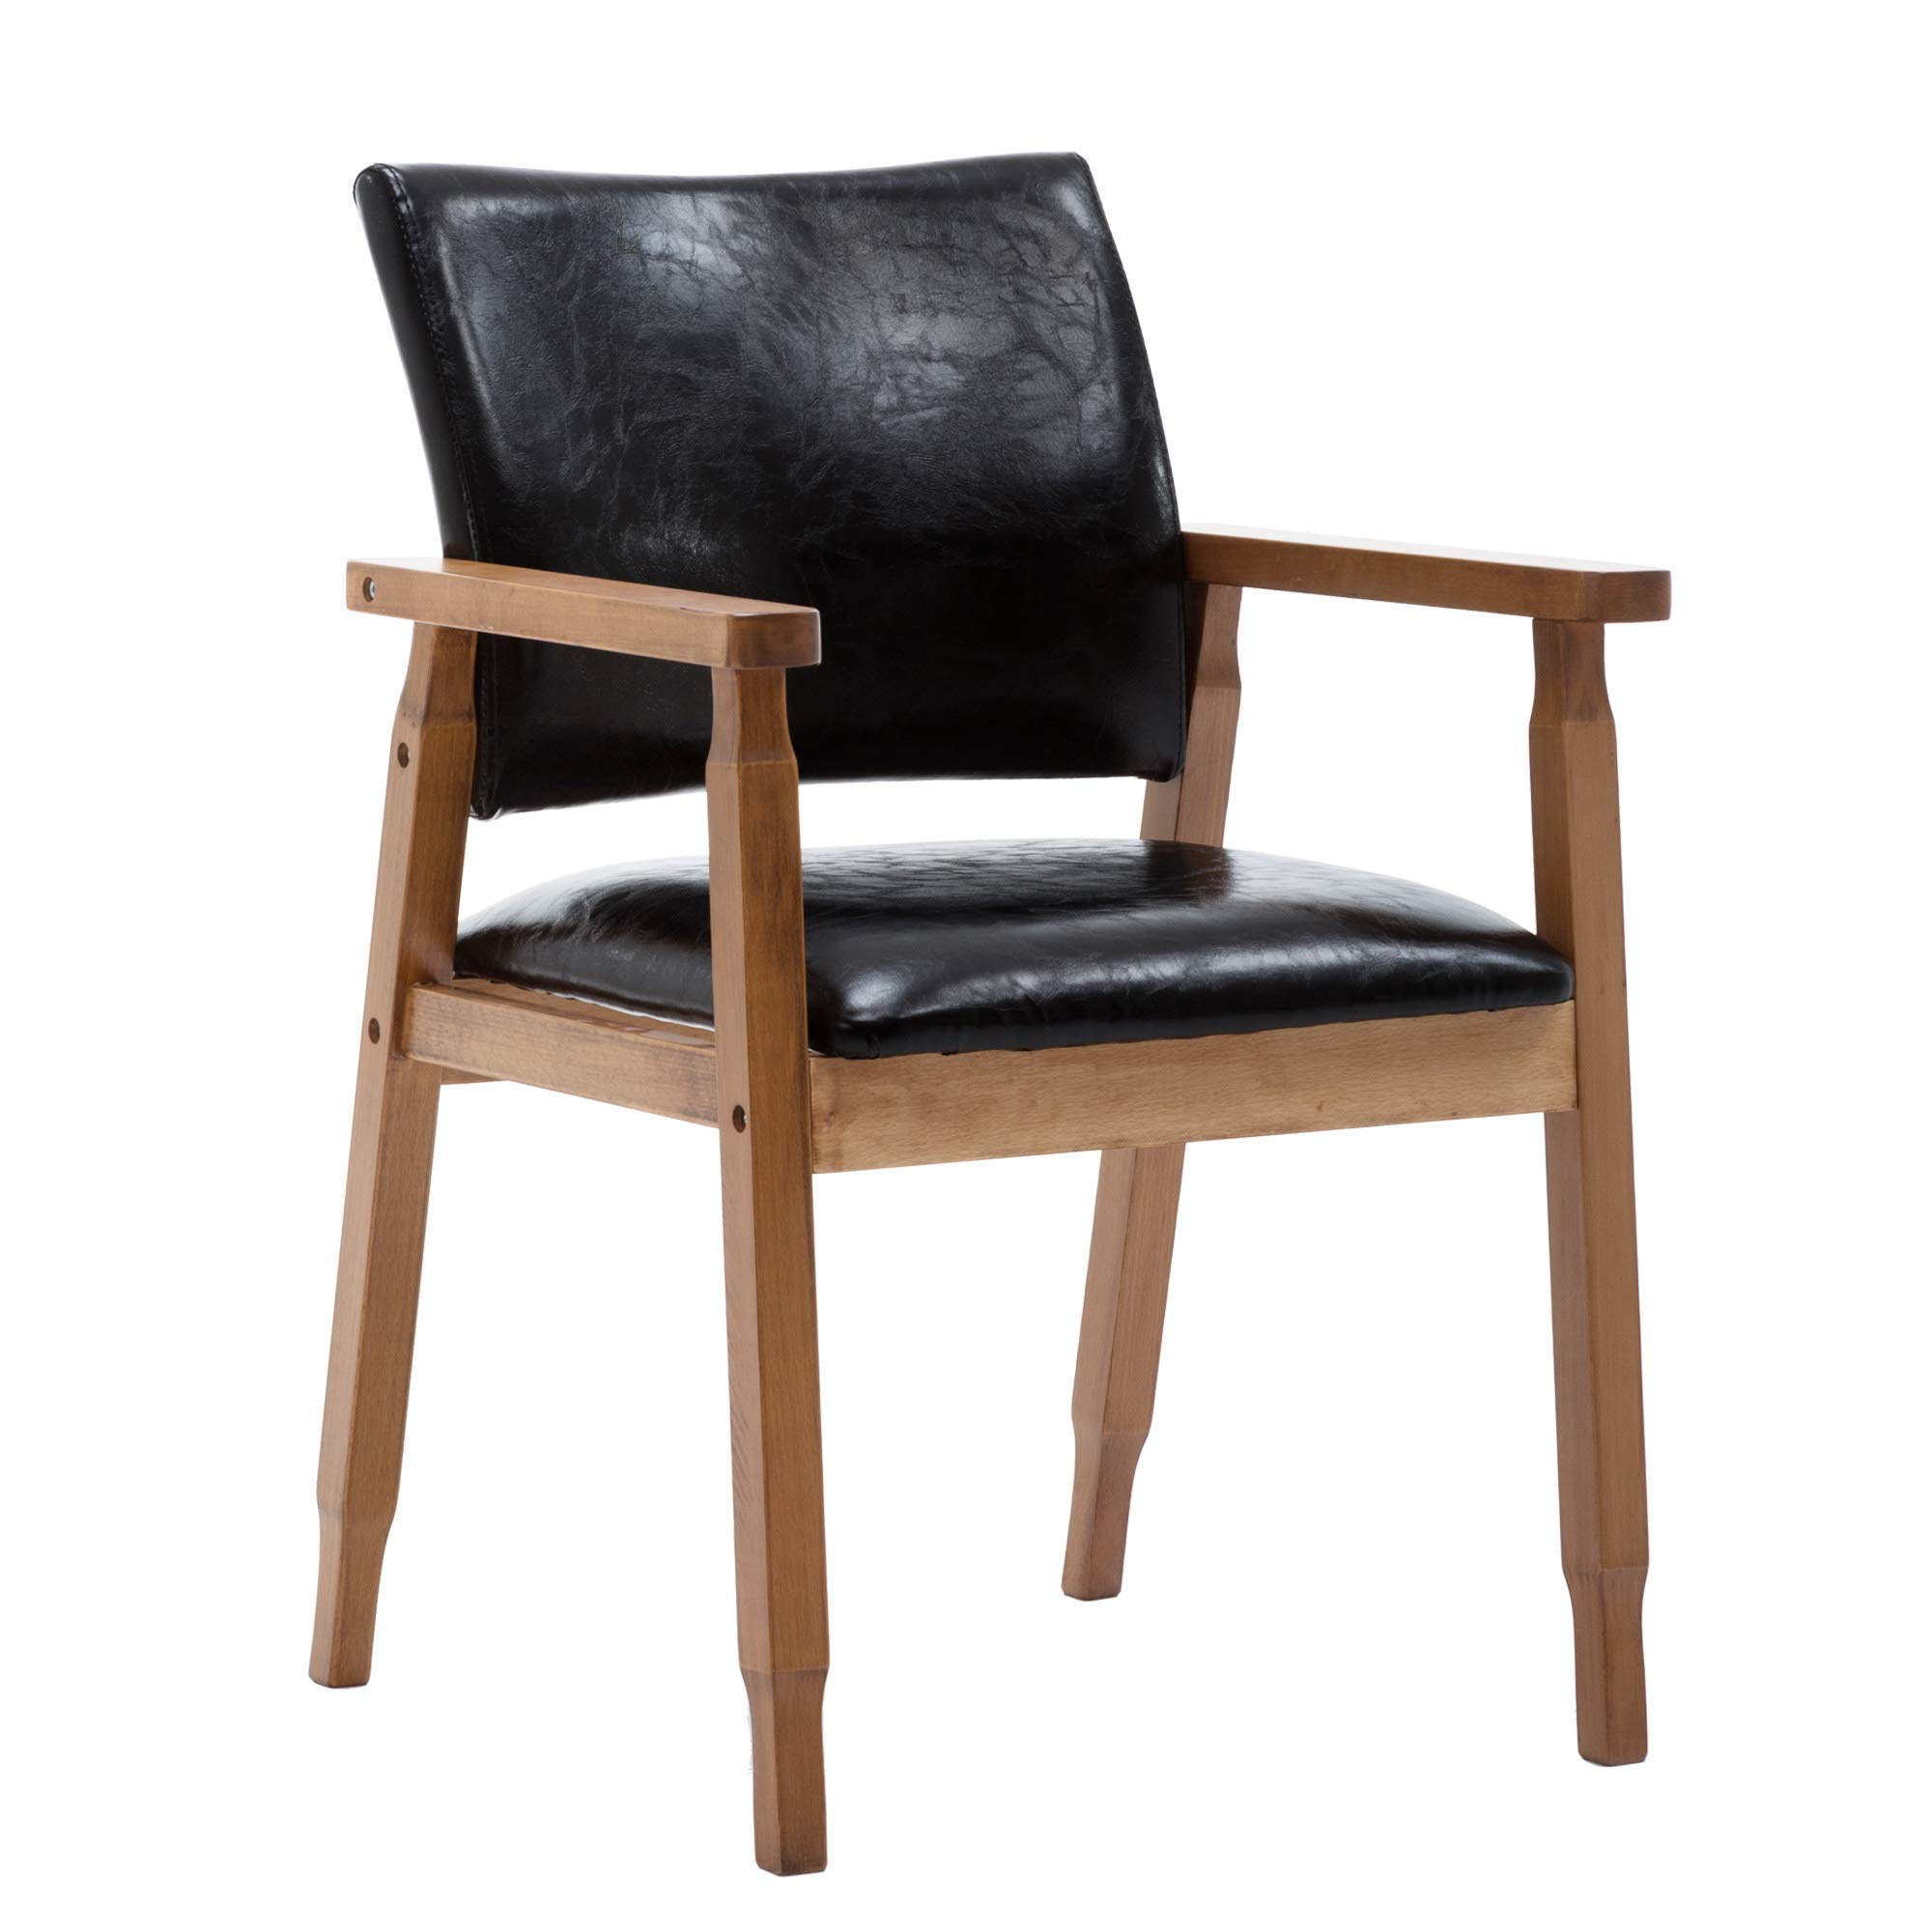 NOBPEINT Mid-Century Dining Side Chair with Faux Leather Seat in Black, Arm Chair in Walnut